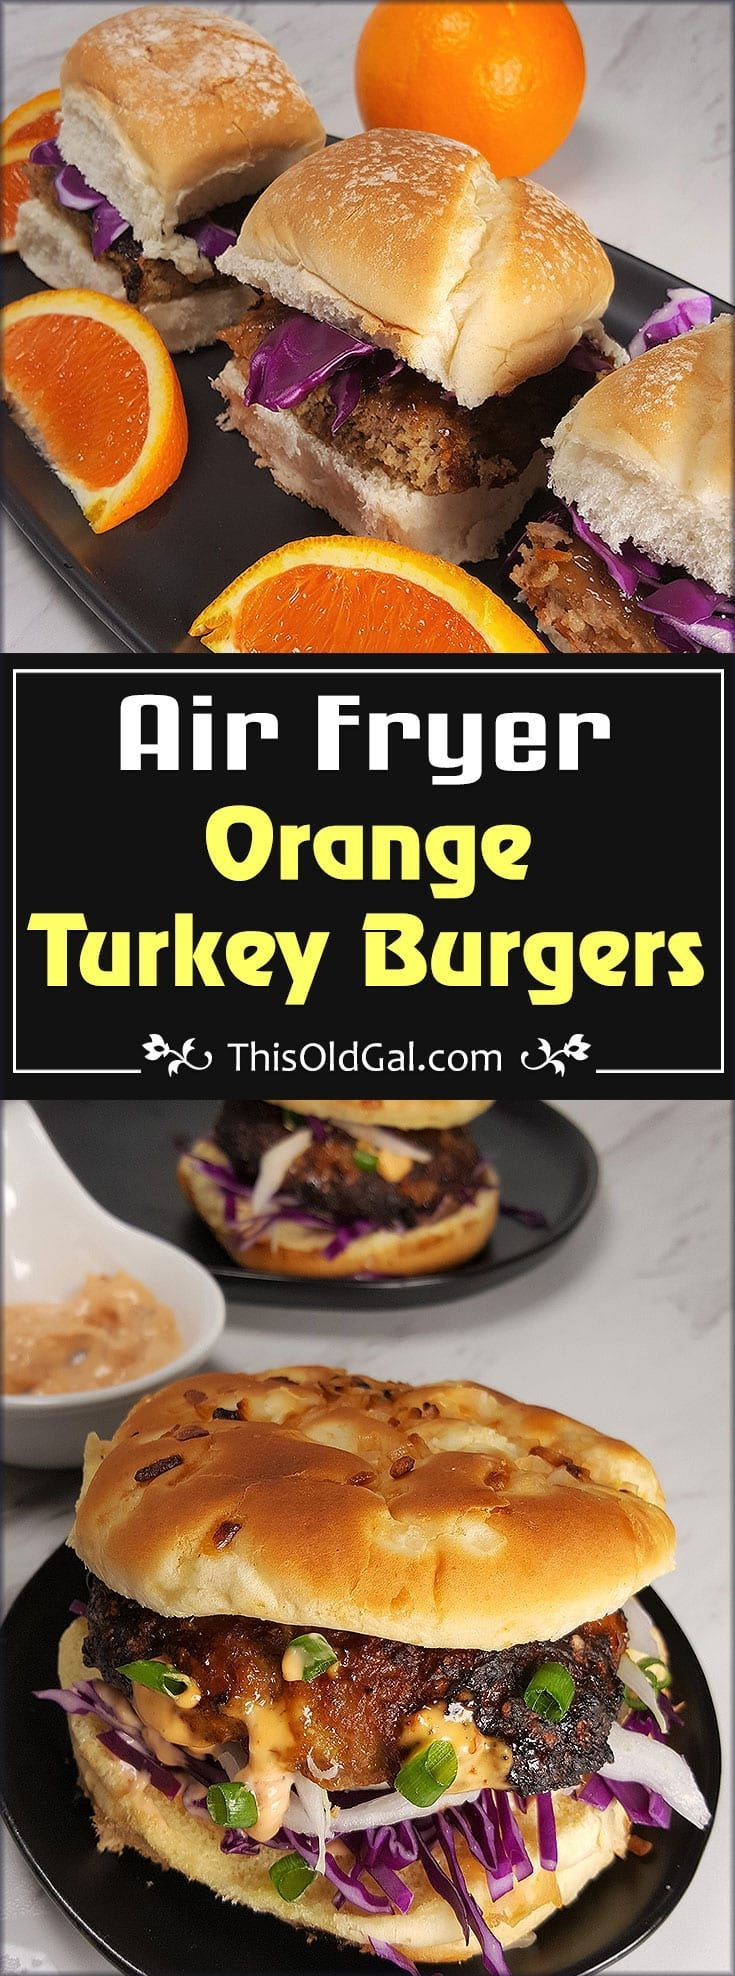 AirFryer Bacon Cheeseburgers Recipe in 2020 Recipes